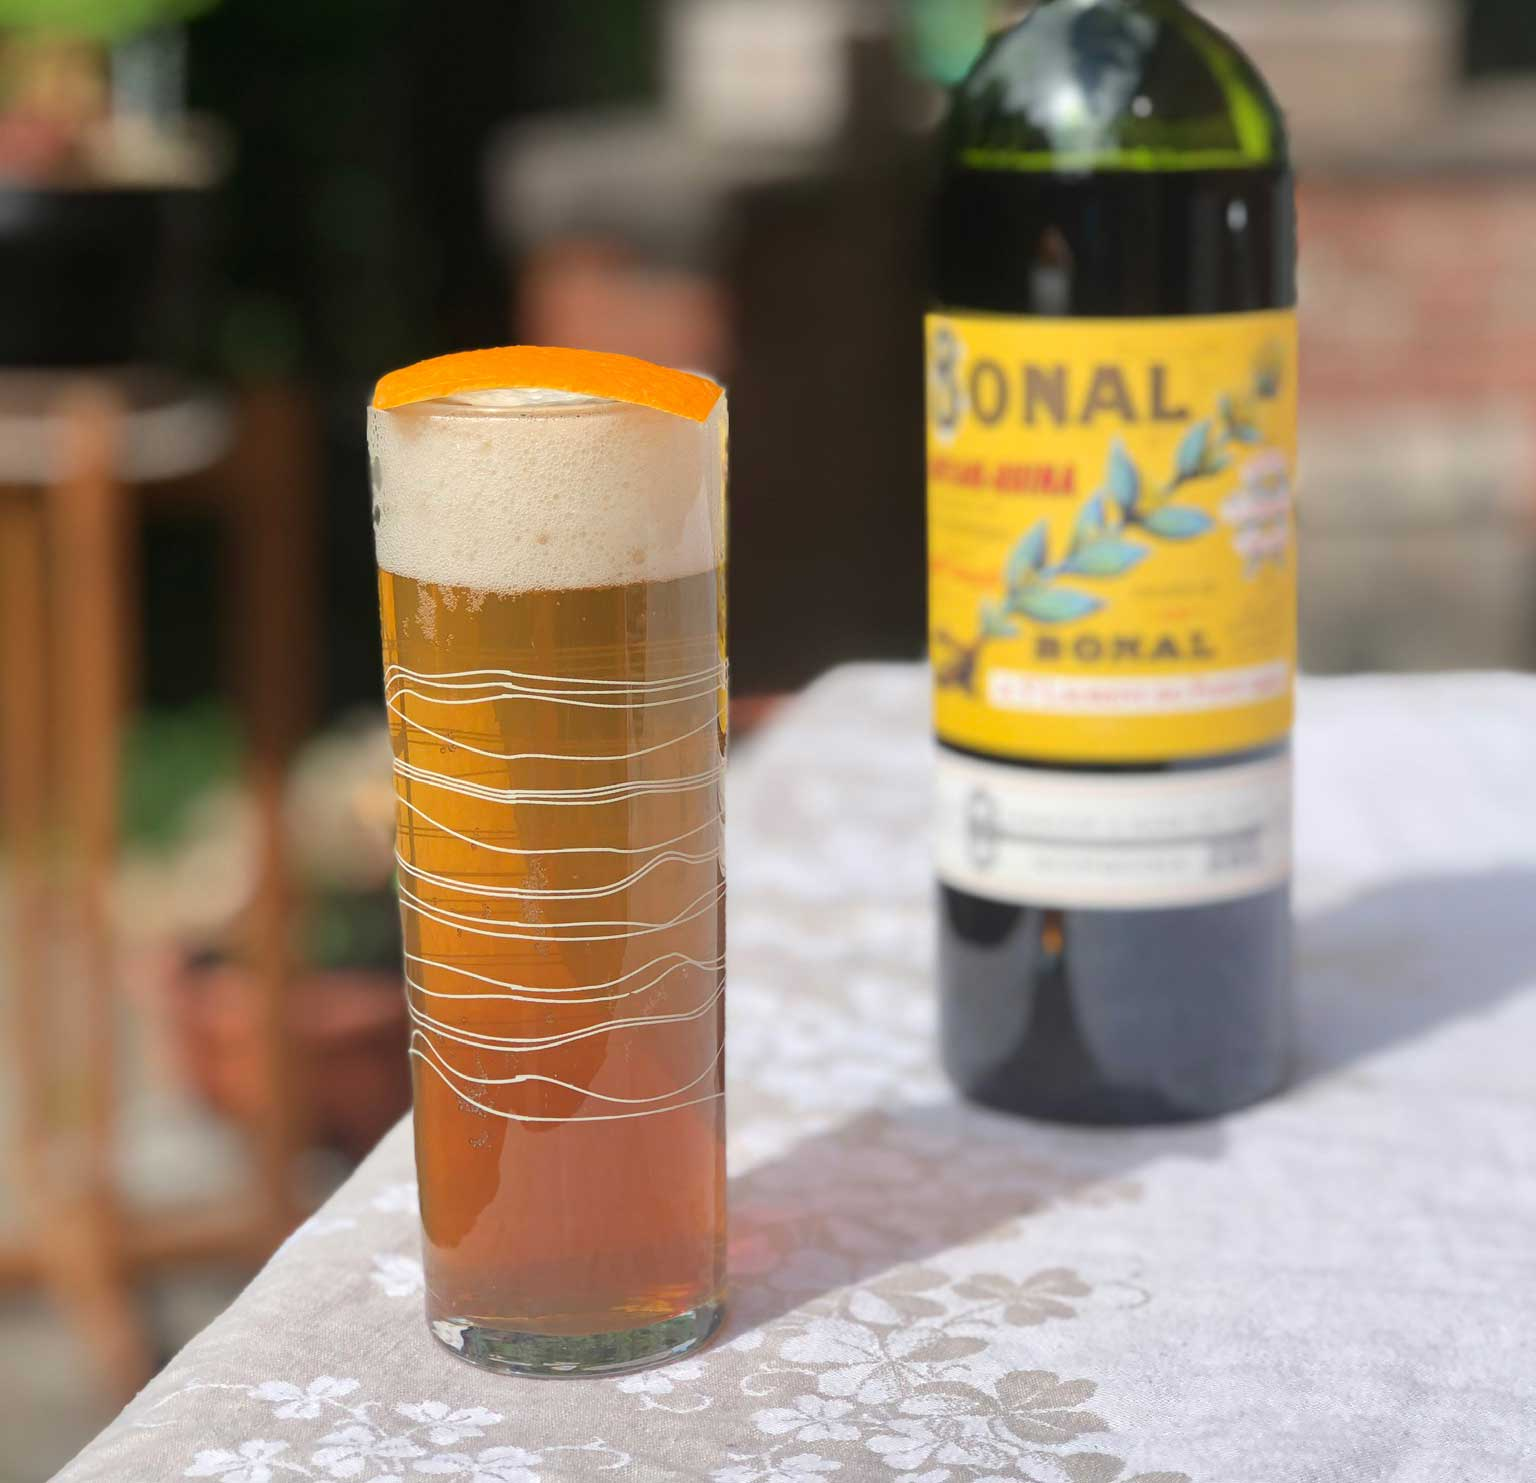 An example of the Amer Frontière, the mixed drink (cocktail) featuring lager, Bonal Gentiane-Quina, and orange bitters